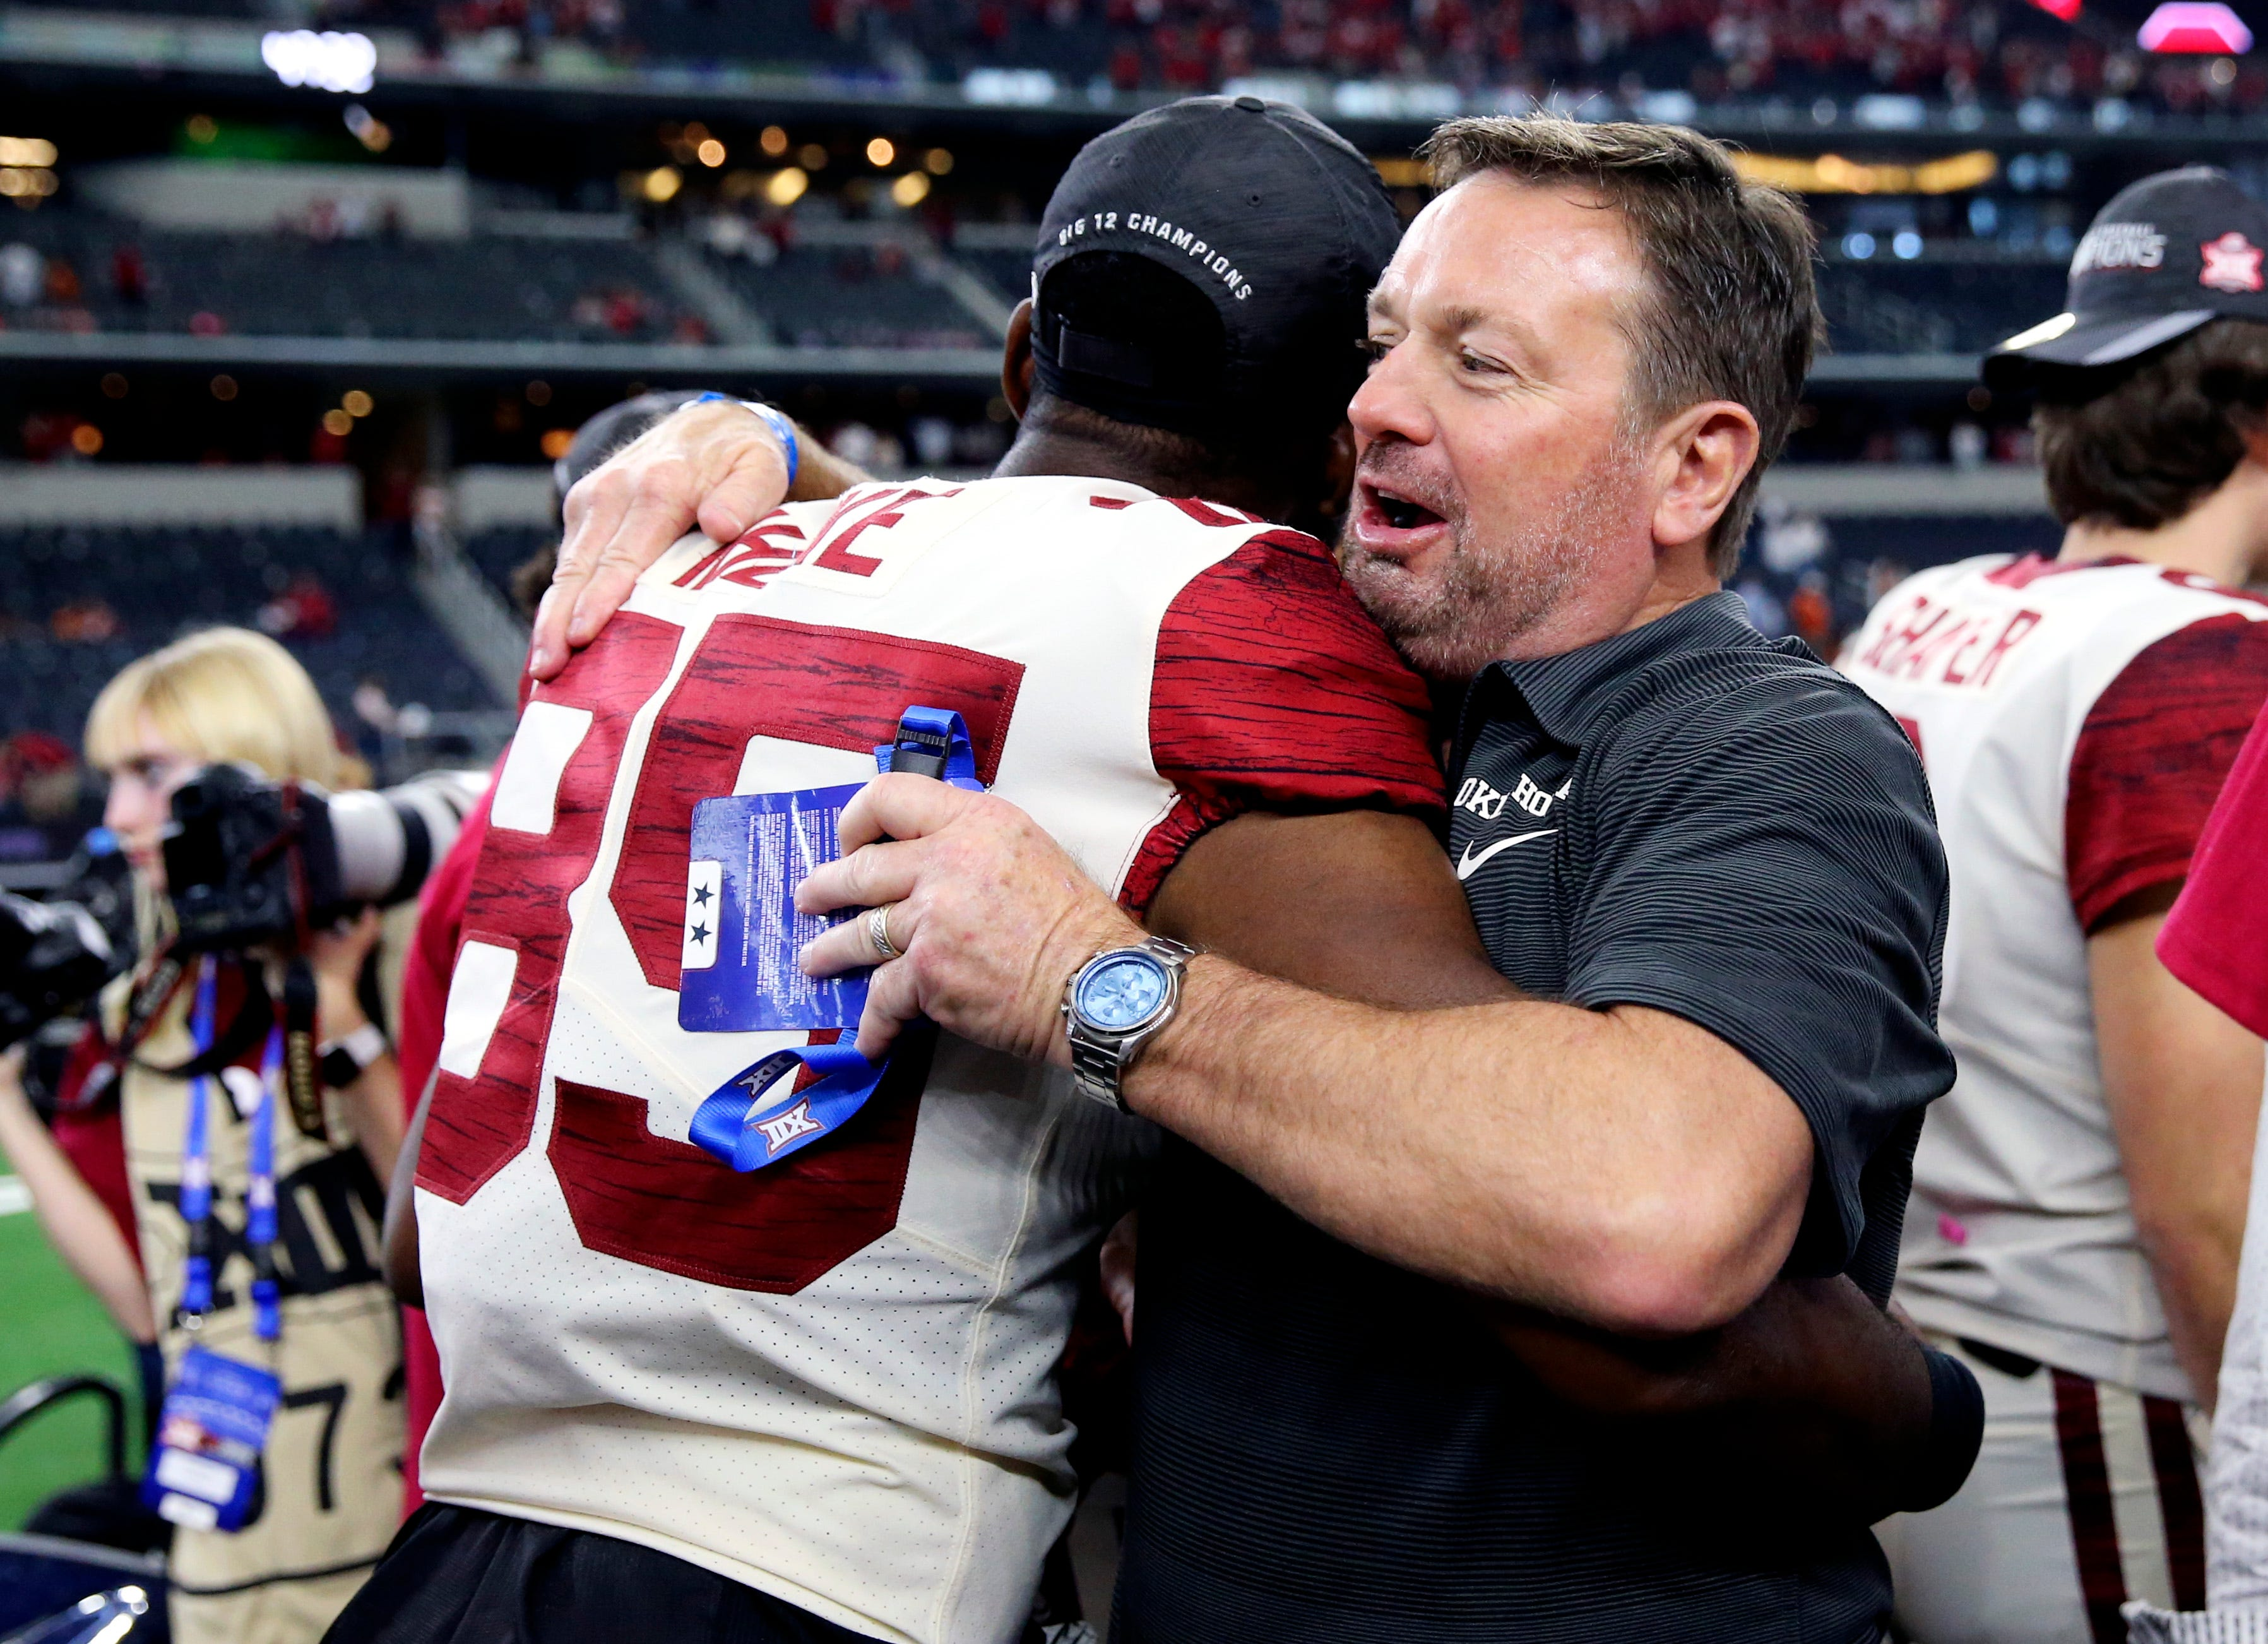 Bob Stoops helping Oklahoma coaching staff after COVID-19 issues with team